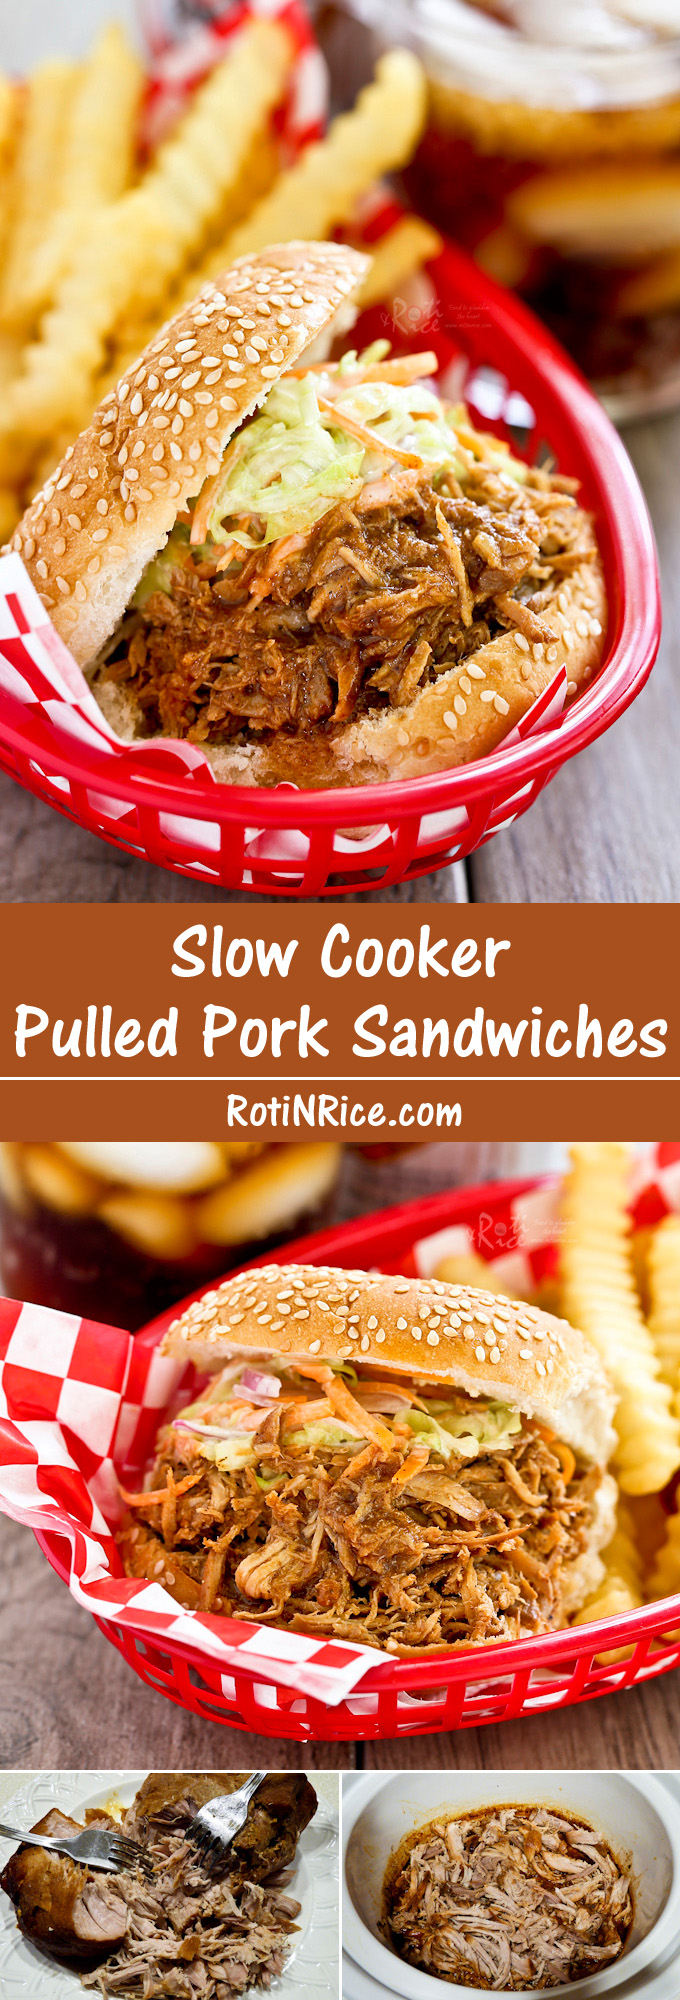 Easy Slow Cooker Pulled Pork Sandwiches flavored with home blended spice mix. Minimum preparation time and can feed a crowd. Great for tailgate parties. | RotiNRice.com